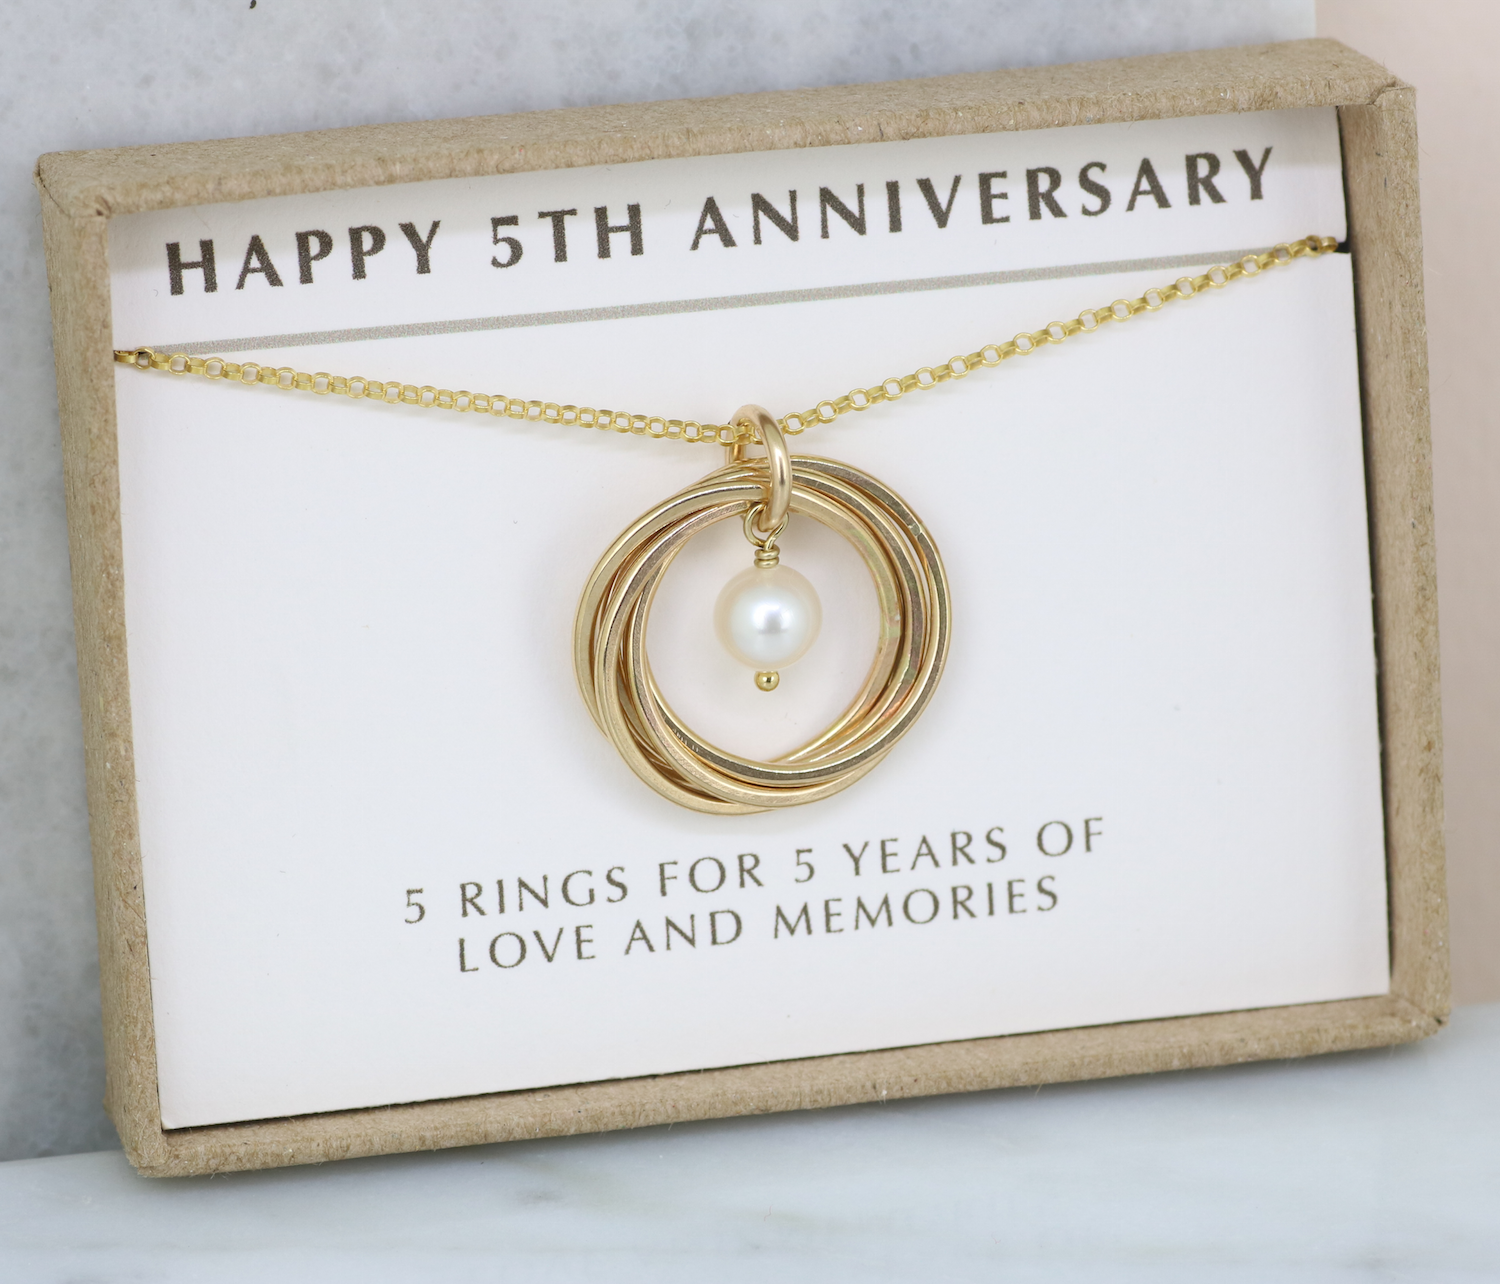 5th Anniversary Gift For Wife Gold Necklace For 5 Year Anniversary Lilia 90th Birthday Gifts 60th Birthday Gifts 80th Birthday Gifts